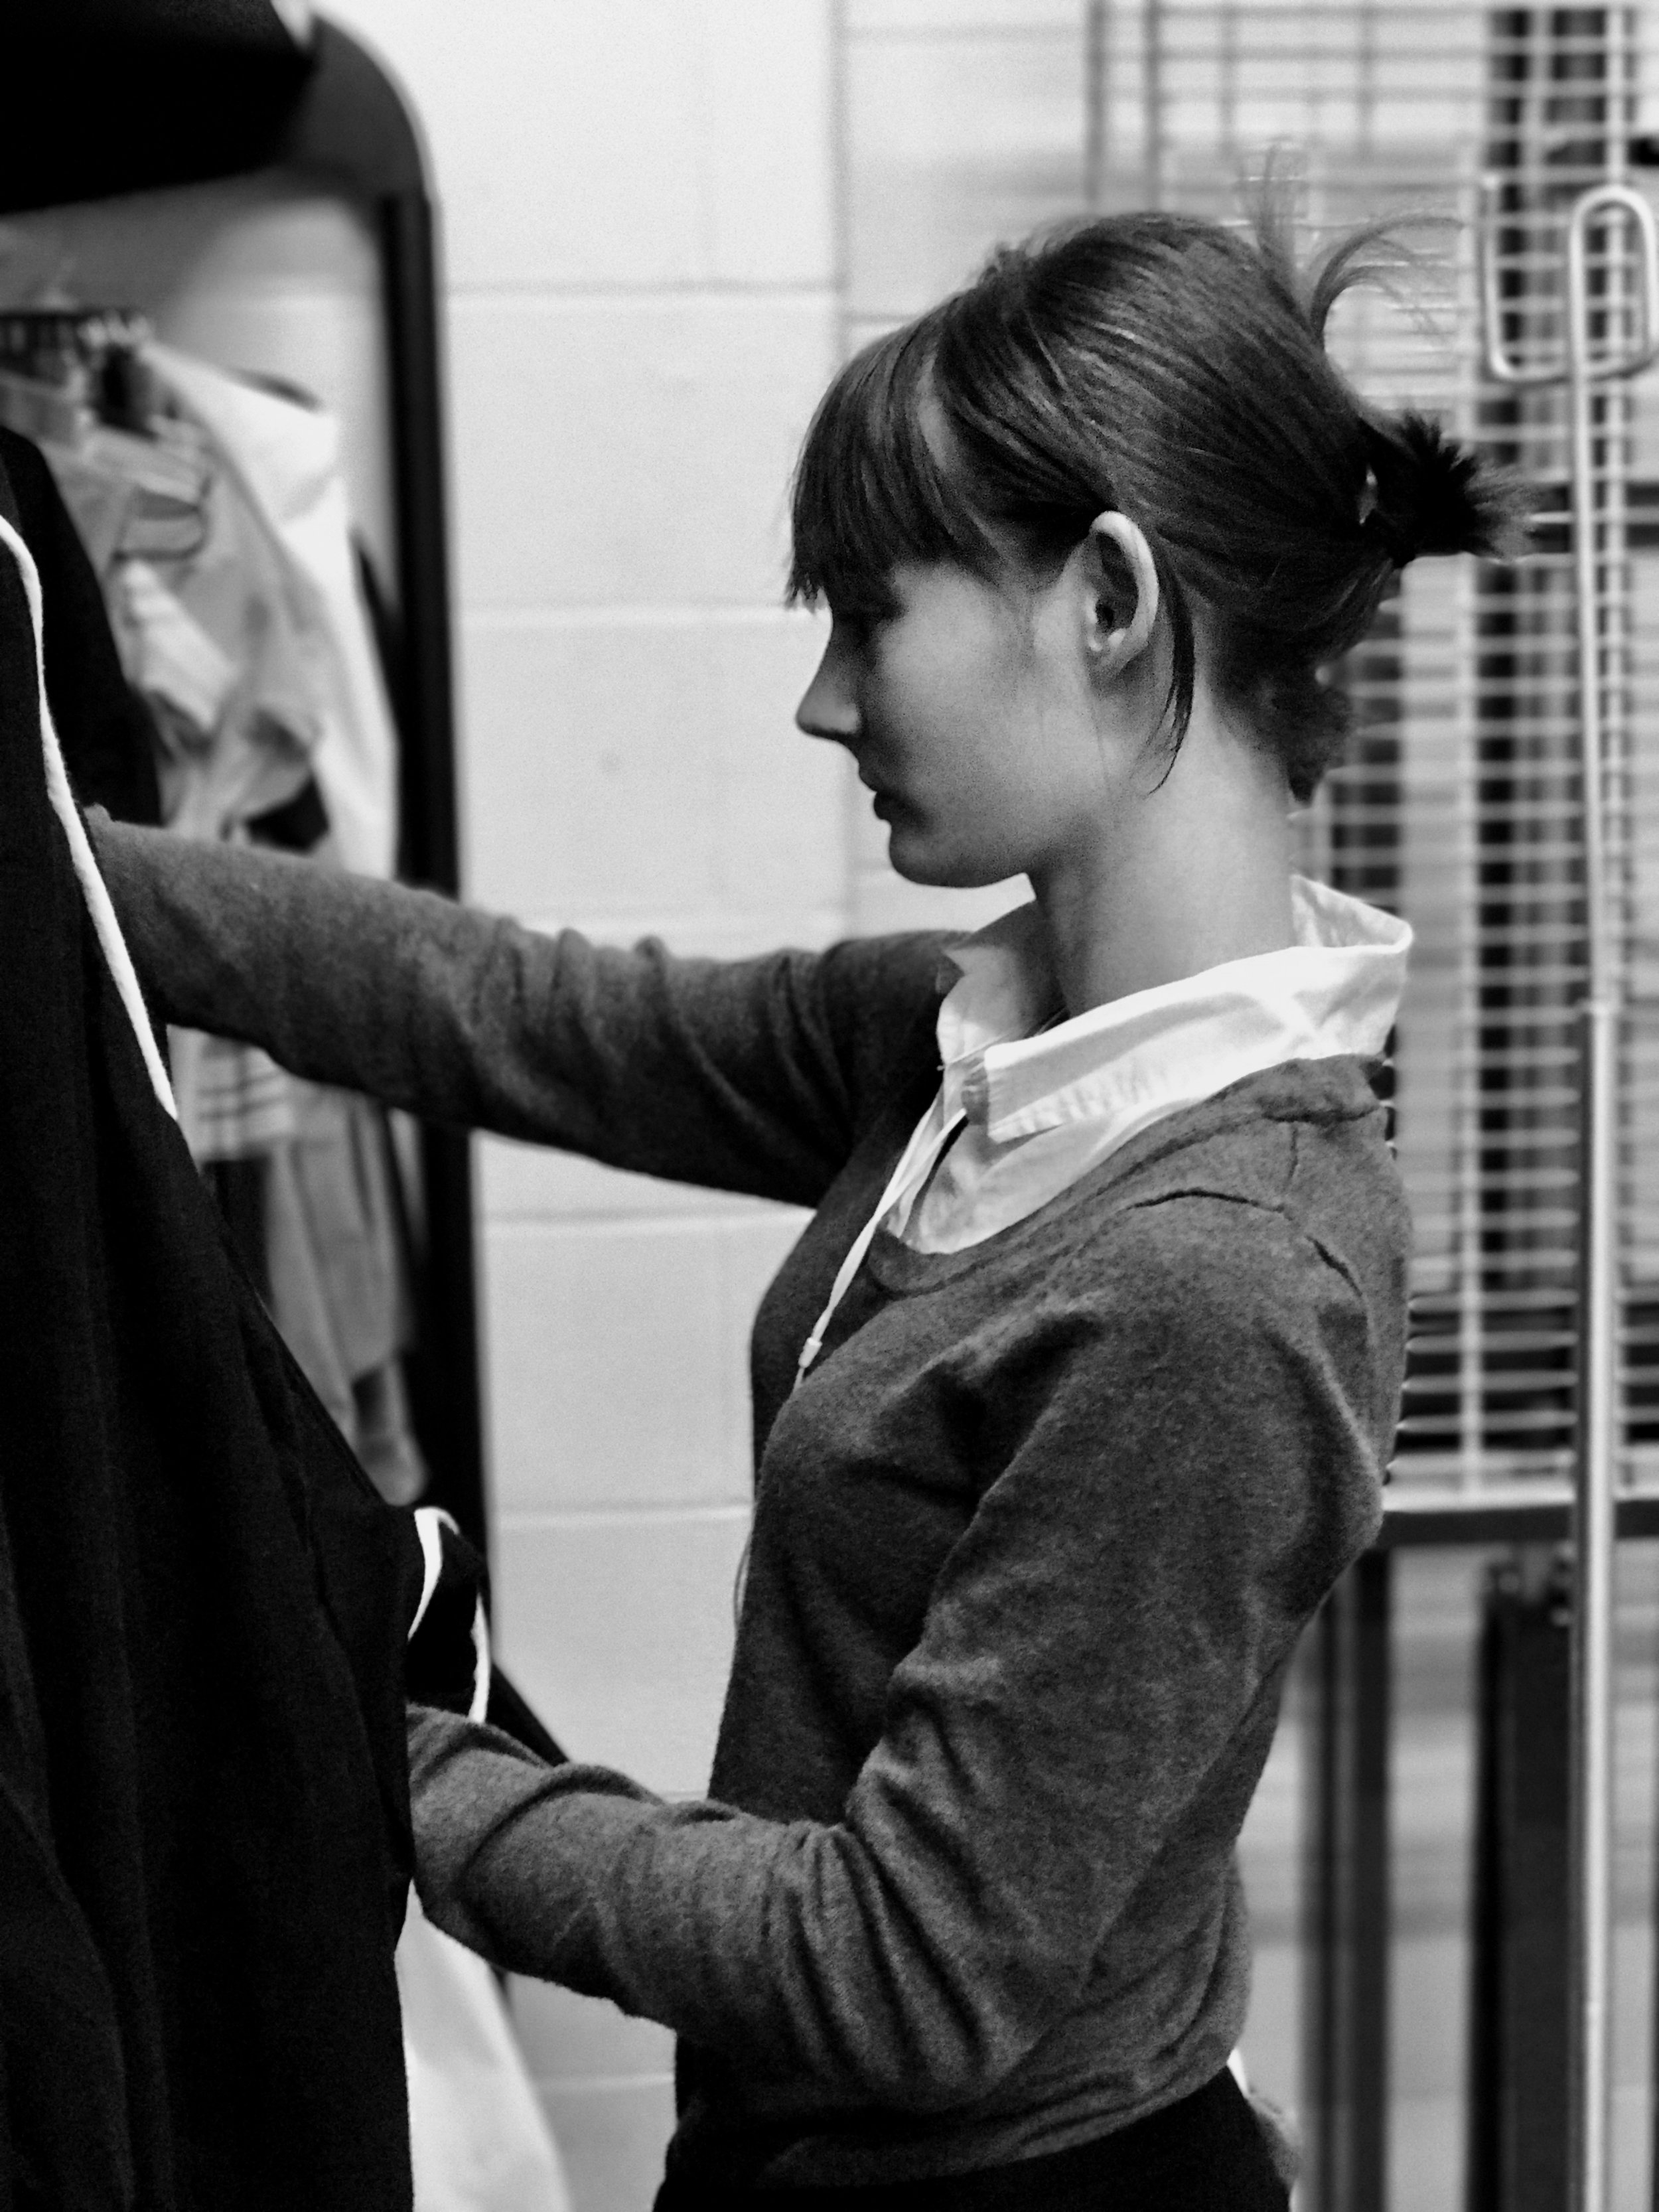 Backstage in the Costume Shop.